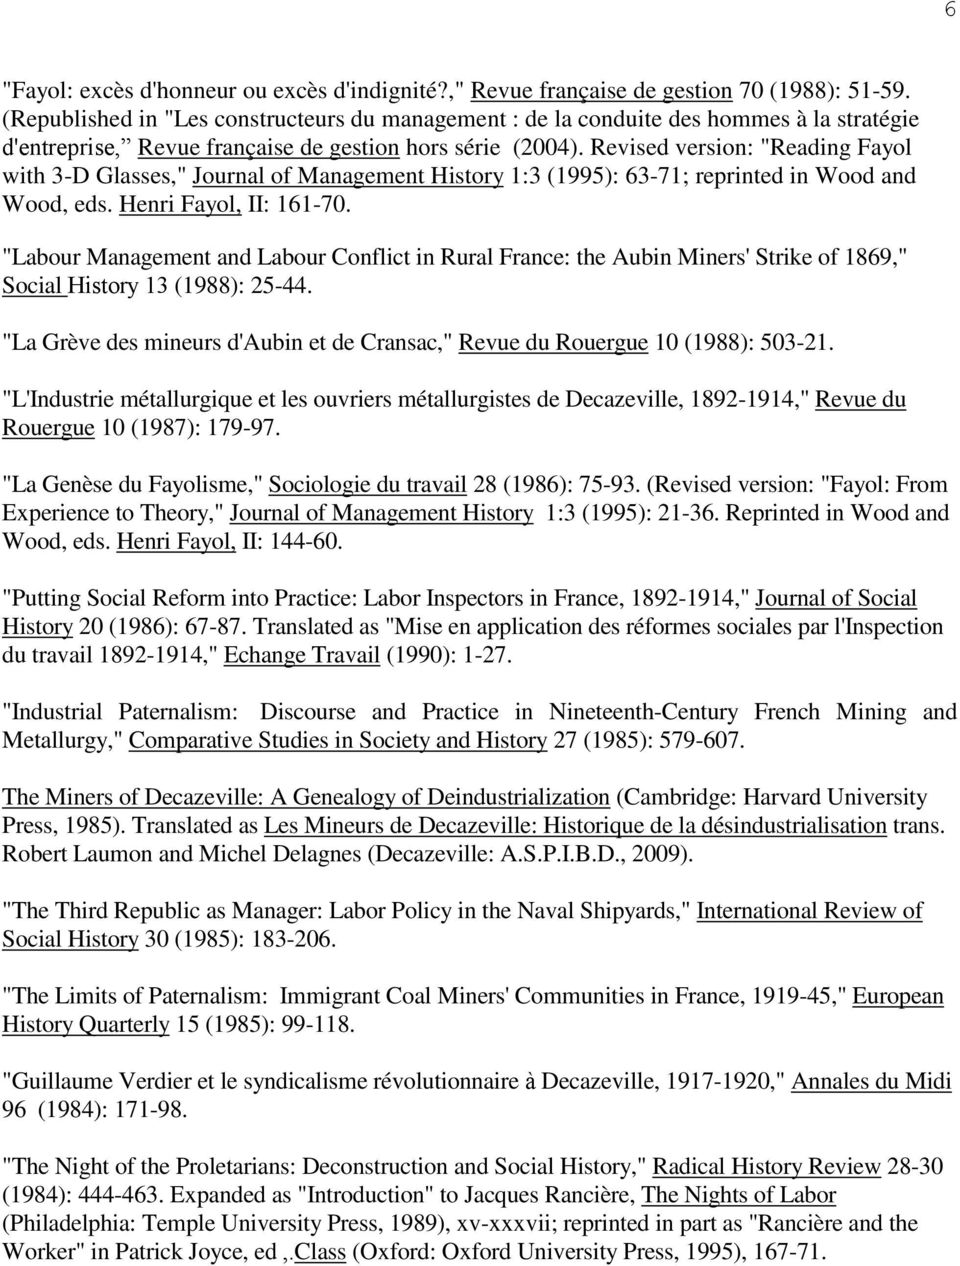 "Revised version: ""Reading Fayol with 3-D Glasses,"" Journal of Management History 1:3 (1995): 63-71; reprinted in Wood and Wood, eds. Henri Fayol, II: 161-70."